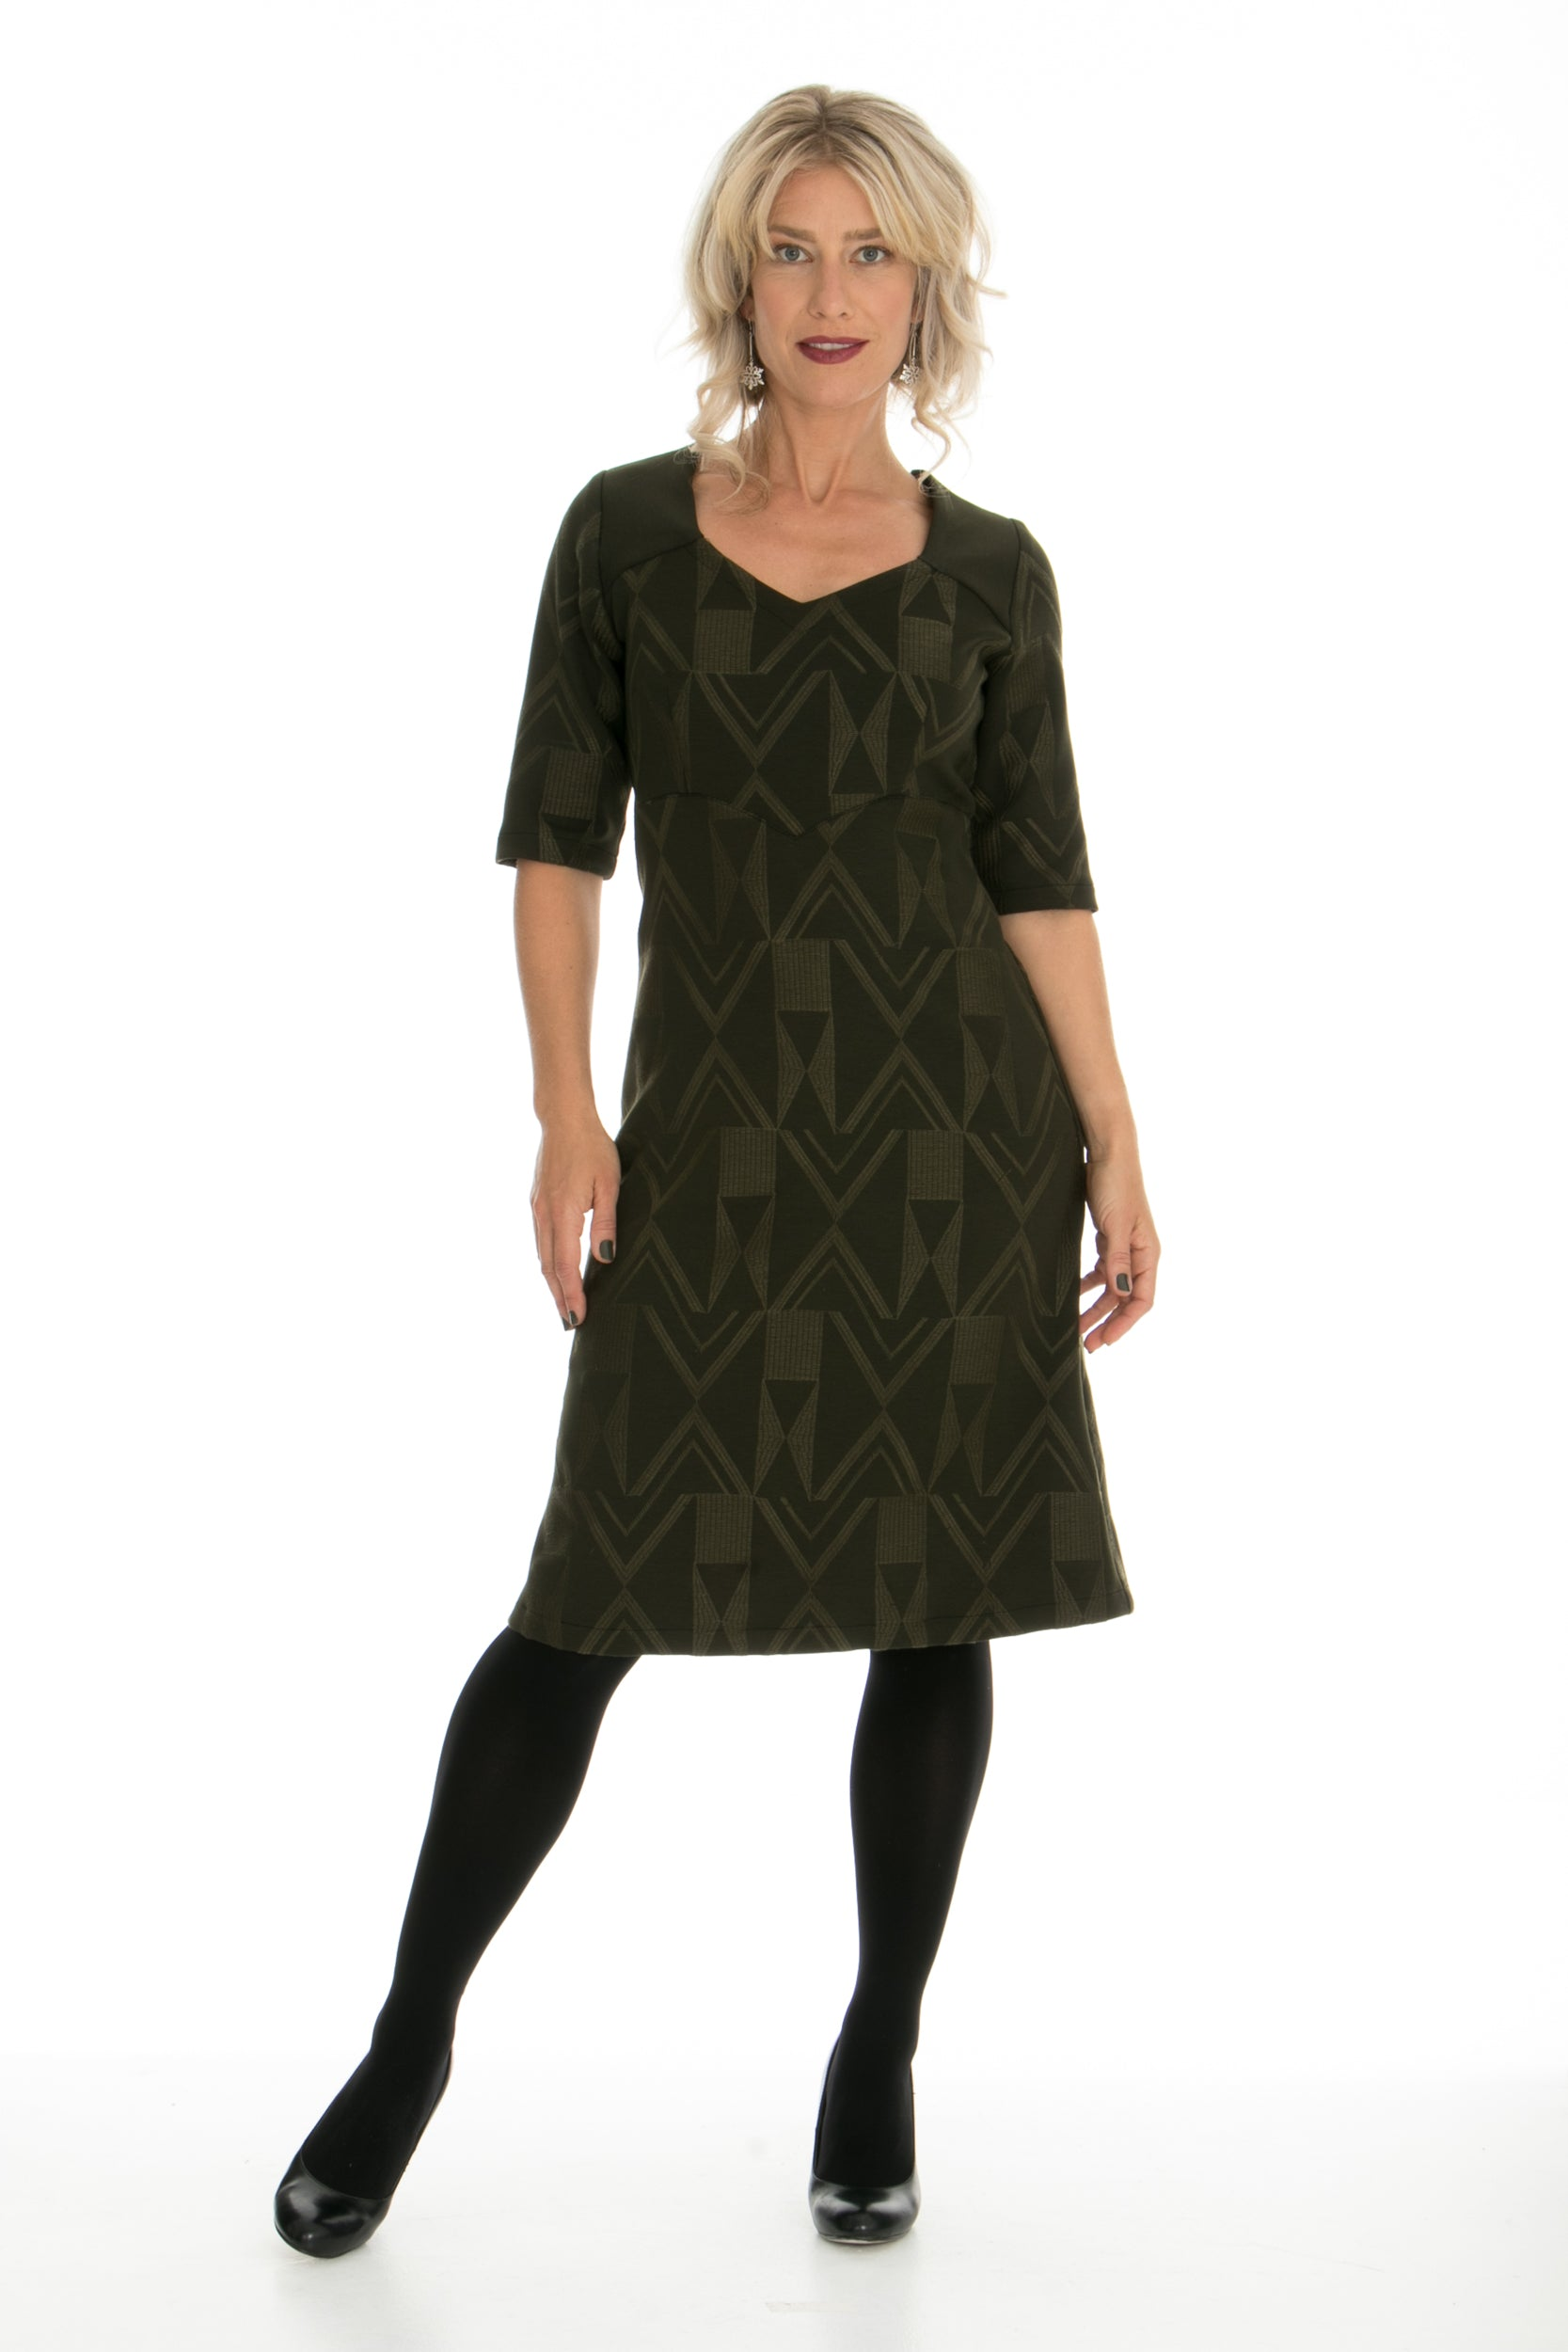 Vesta Astro Dress - Sergeant Stitched Ponti was $248 now $218